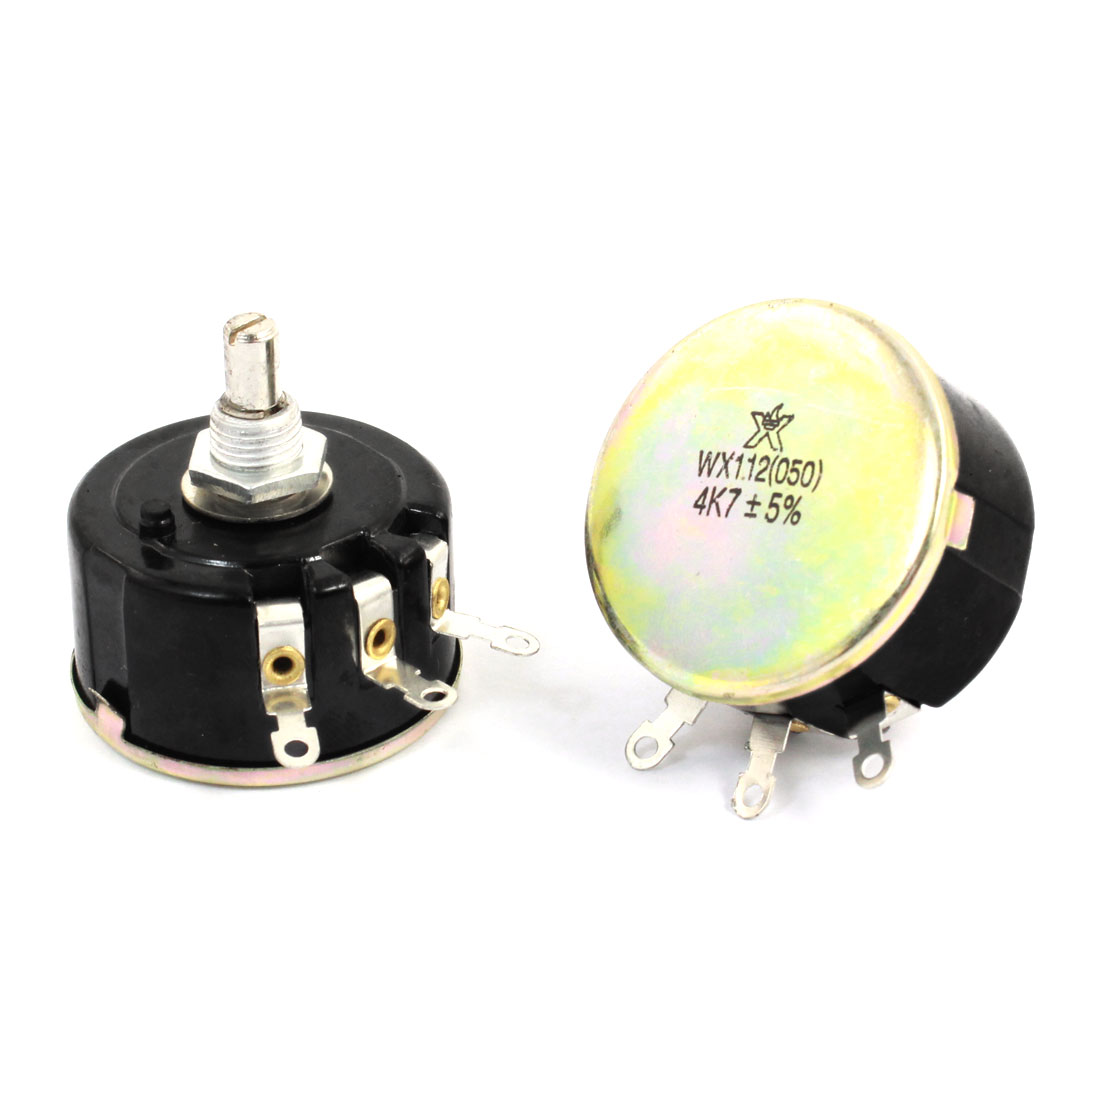 2pcs WX112(050) Round Shaft 3 Terminals Wire Wound Potentiometer 4.7K Ohm 5W